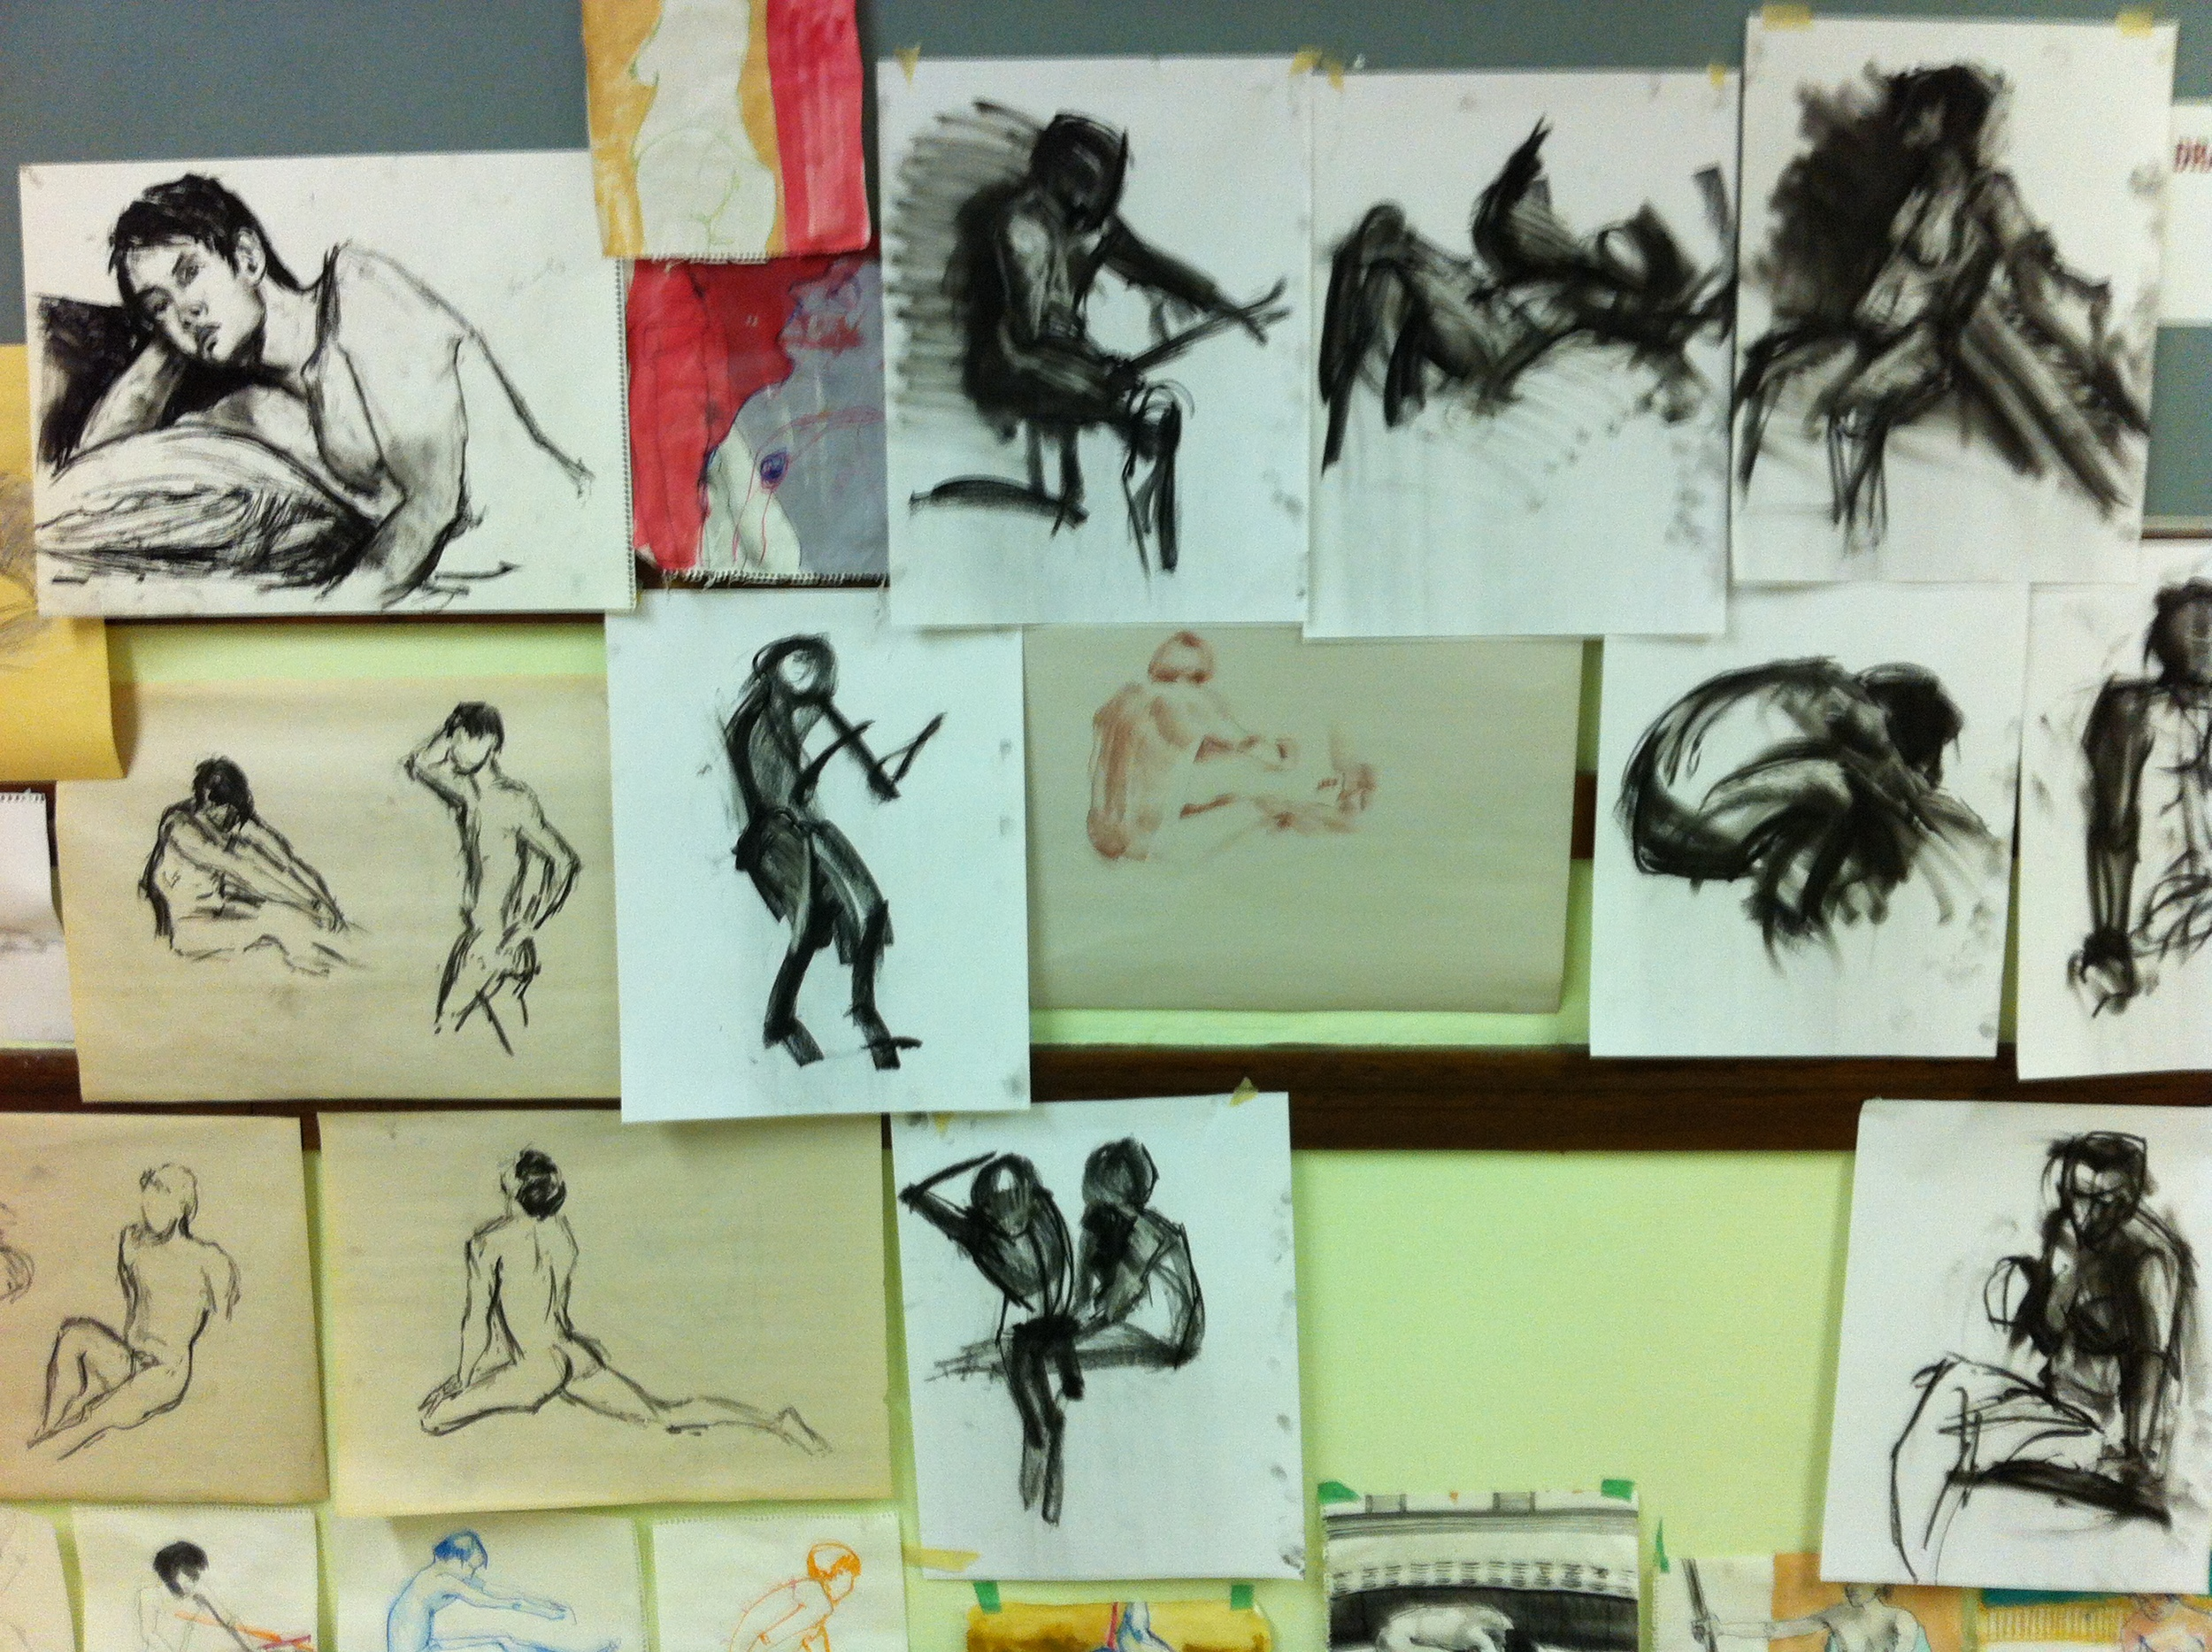 Figure drawing from floor to ceiling give the space a studio/school sense of place.